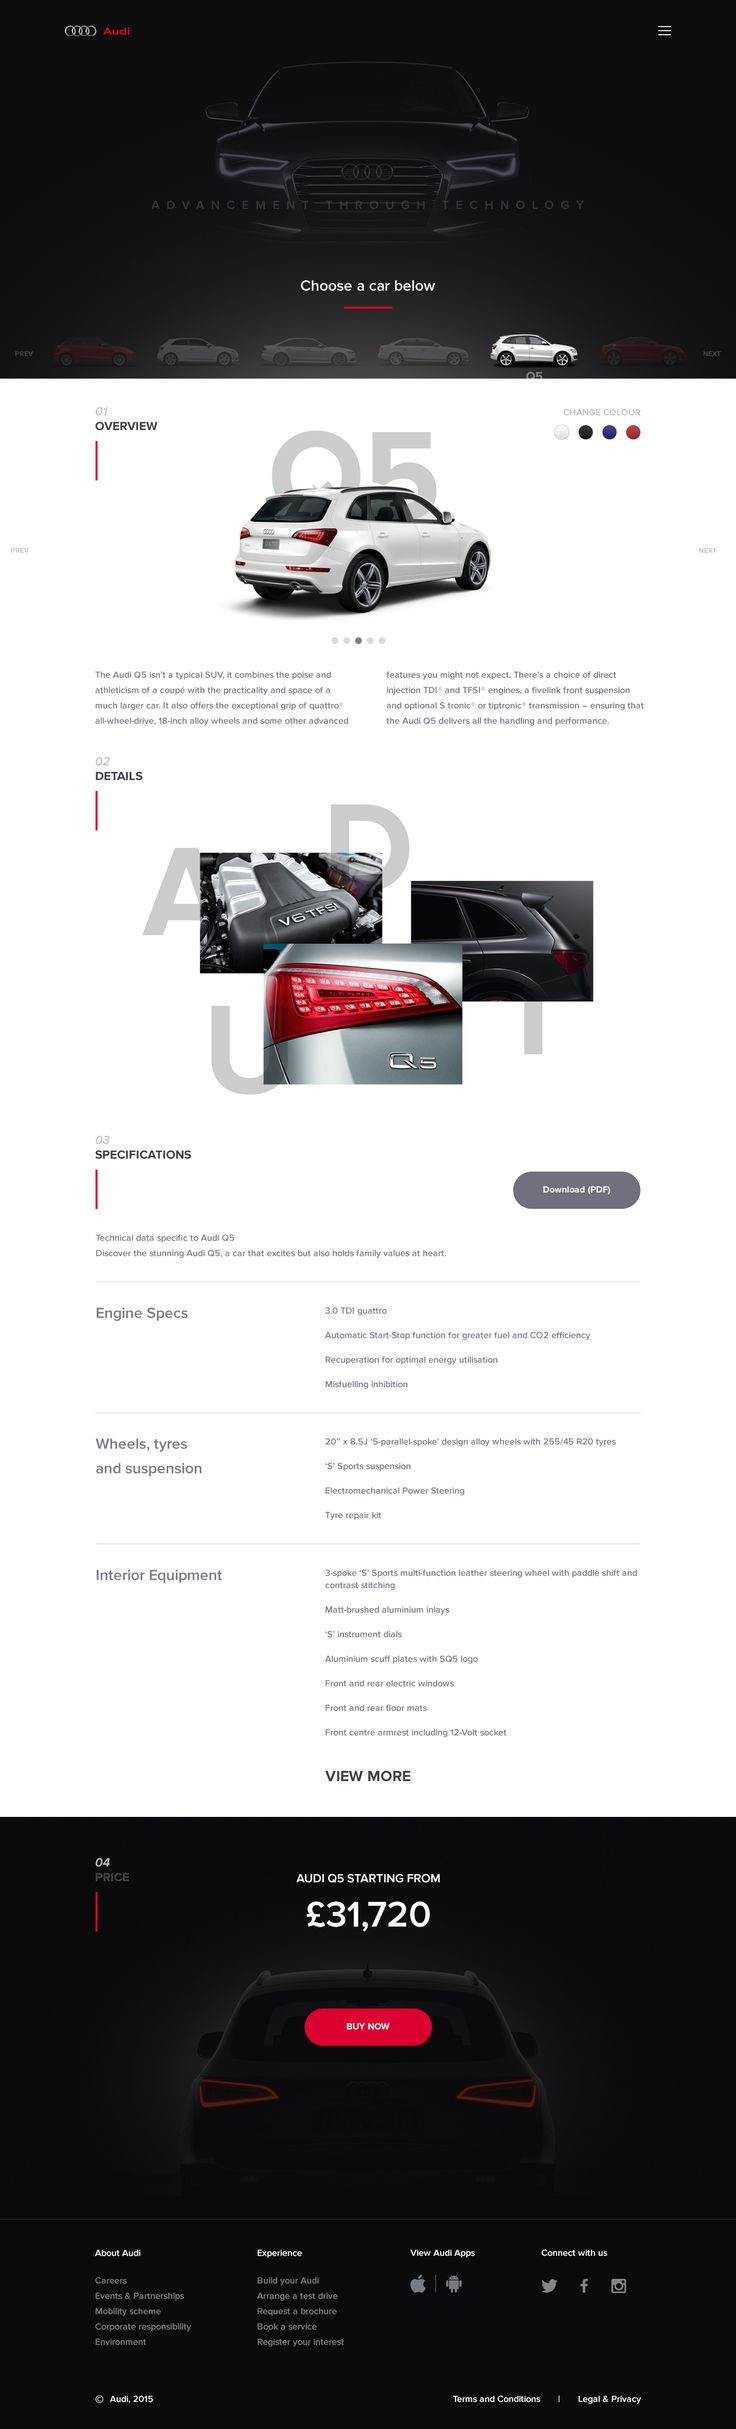 Layout photoshop web design website template tutorials tutorial 022 - Audi A New Experience This Is A Design Exercise That I Created For Myself I Wanted To Reimagine Part Of The Selecting A Car Phase Of The Audi Website